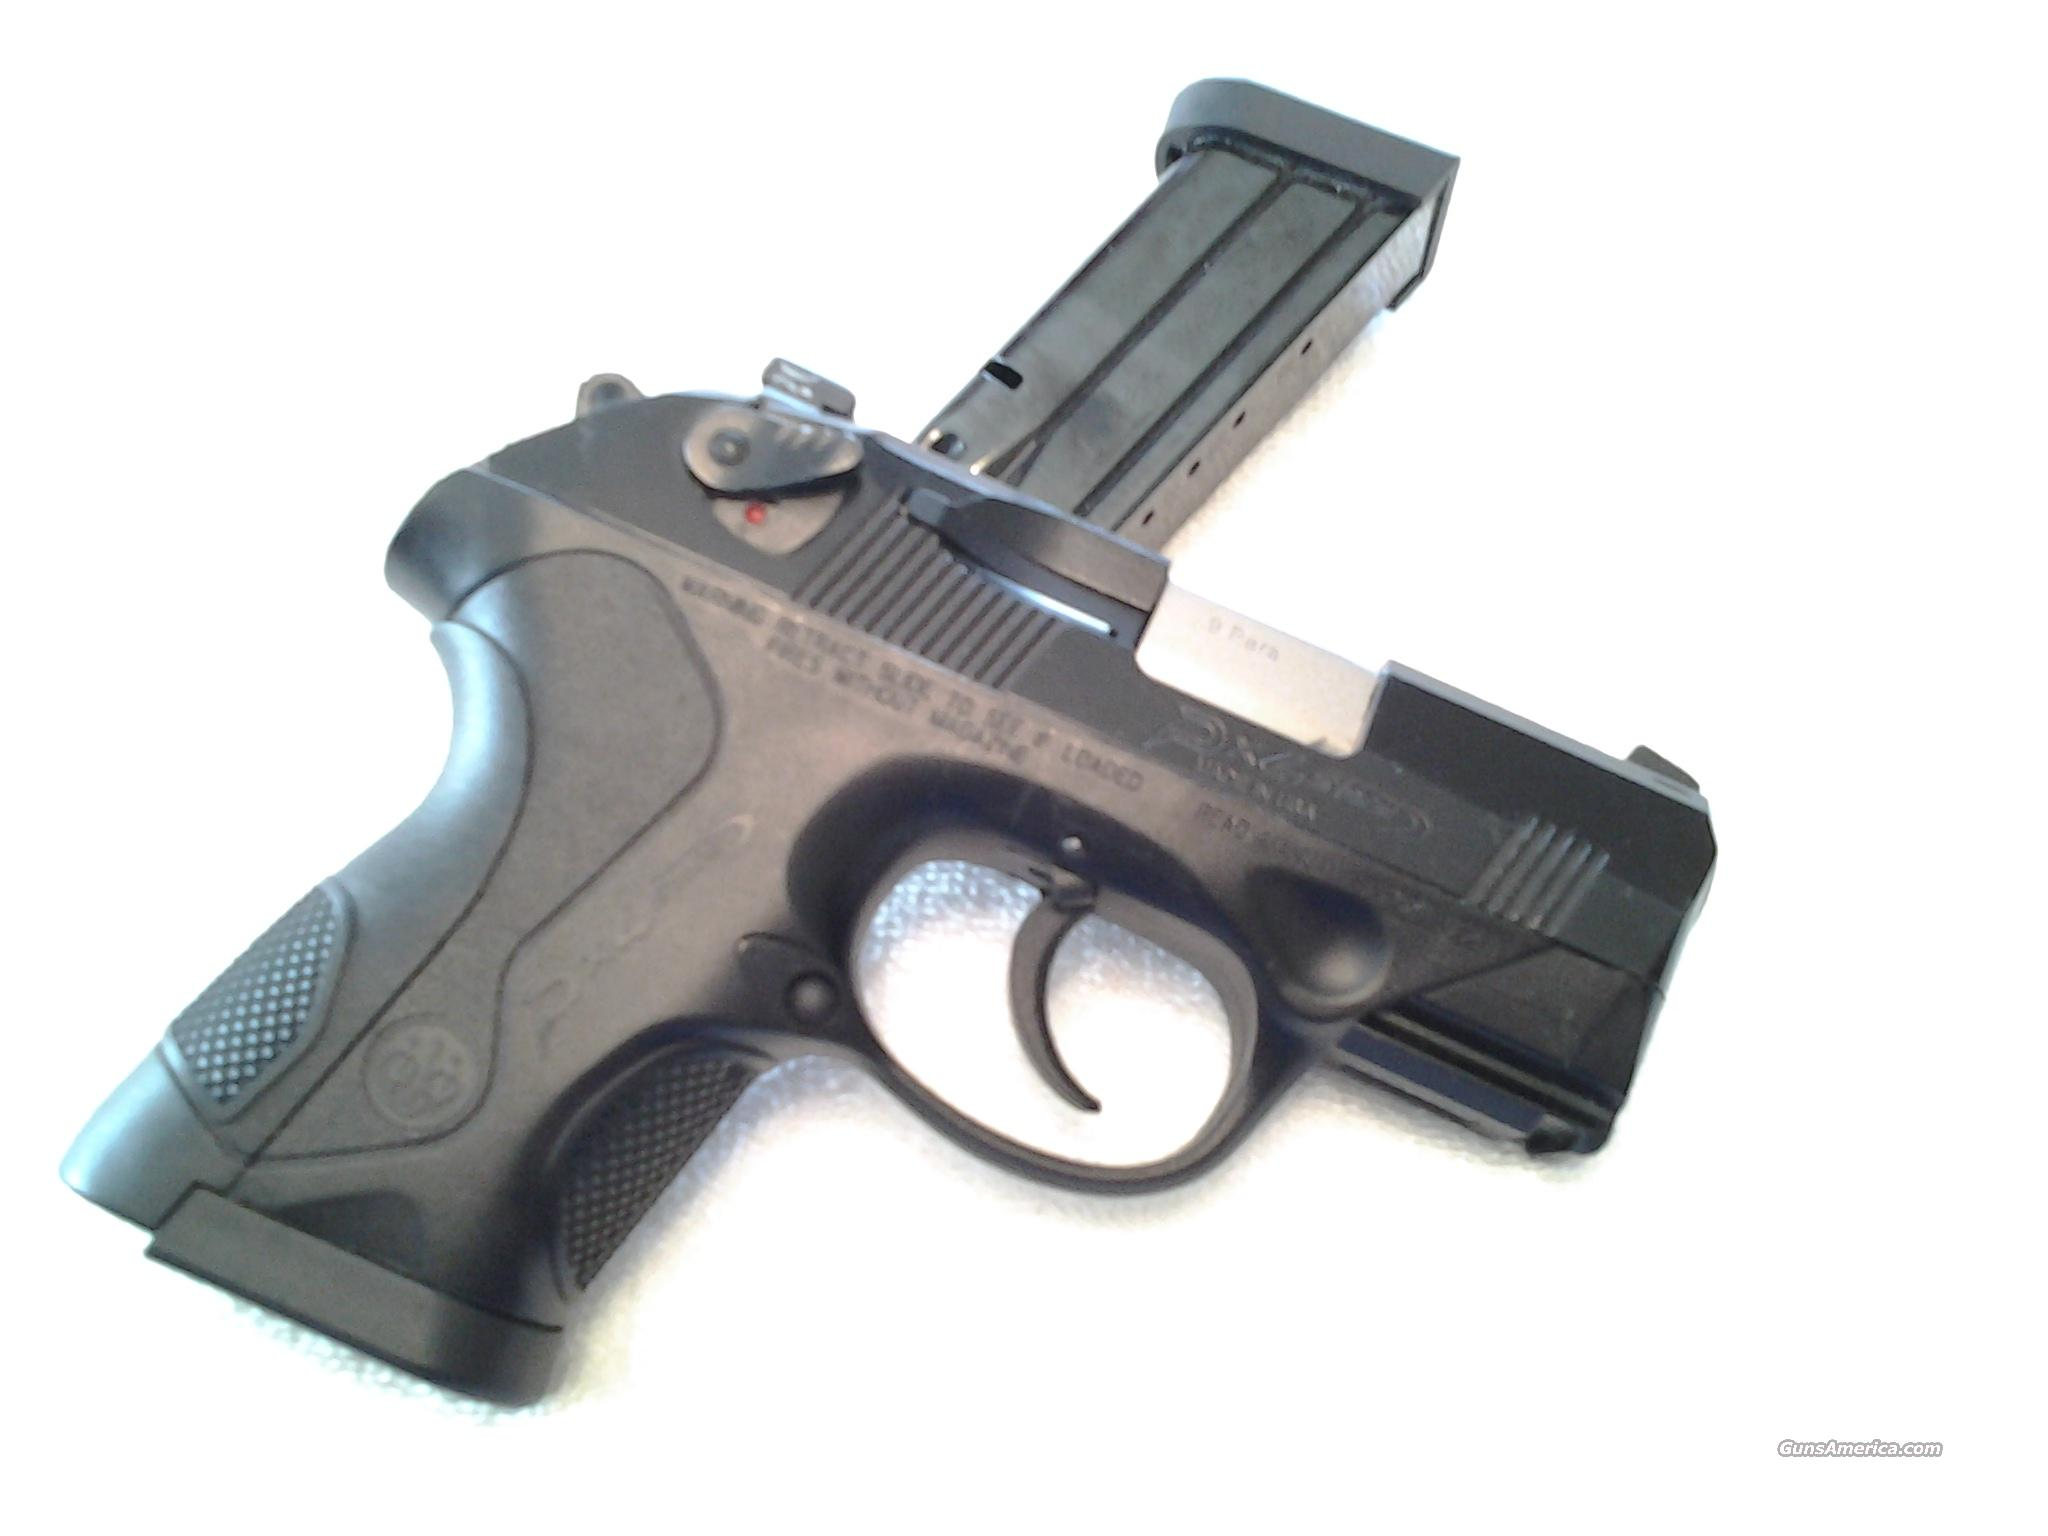 BERETTA PX4 SUB-COMPACT 9MM  W/ TRIJICON NIGHT SIGHTS  Guns > Pistols > Beretta Pistols > Polymer Frame